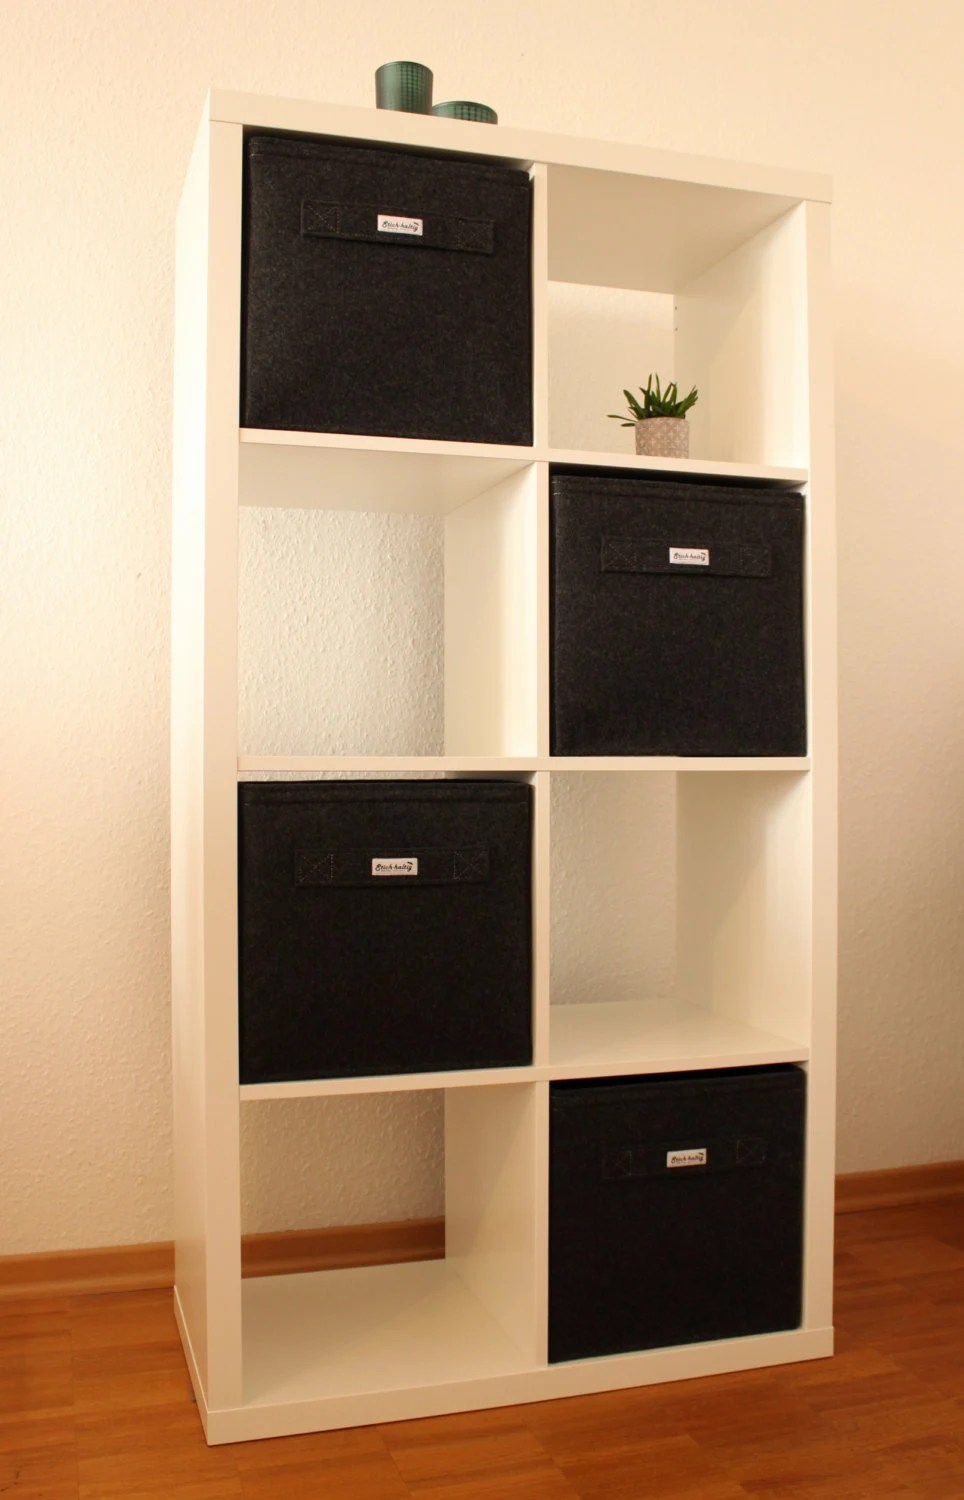 Ikea Kallax Dark Grey Felt Boxes Fit Into Ikea Expedit And Kallax Felt Storage Basket For A Shelves Custom Made Felt Storage Boxes